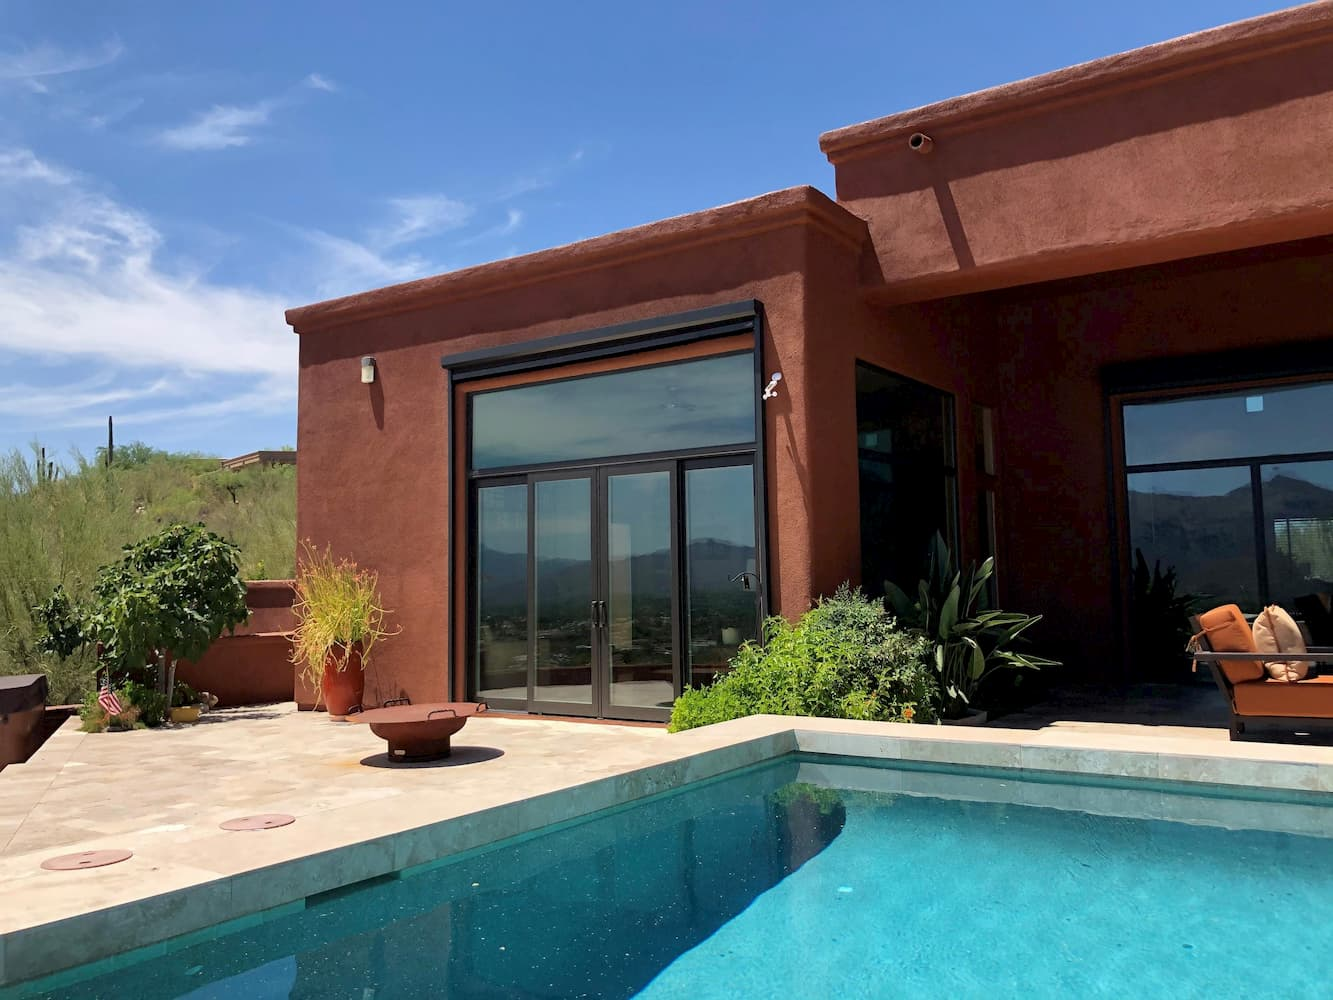 Exterior view of French patio doors in Tucson home living room